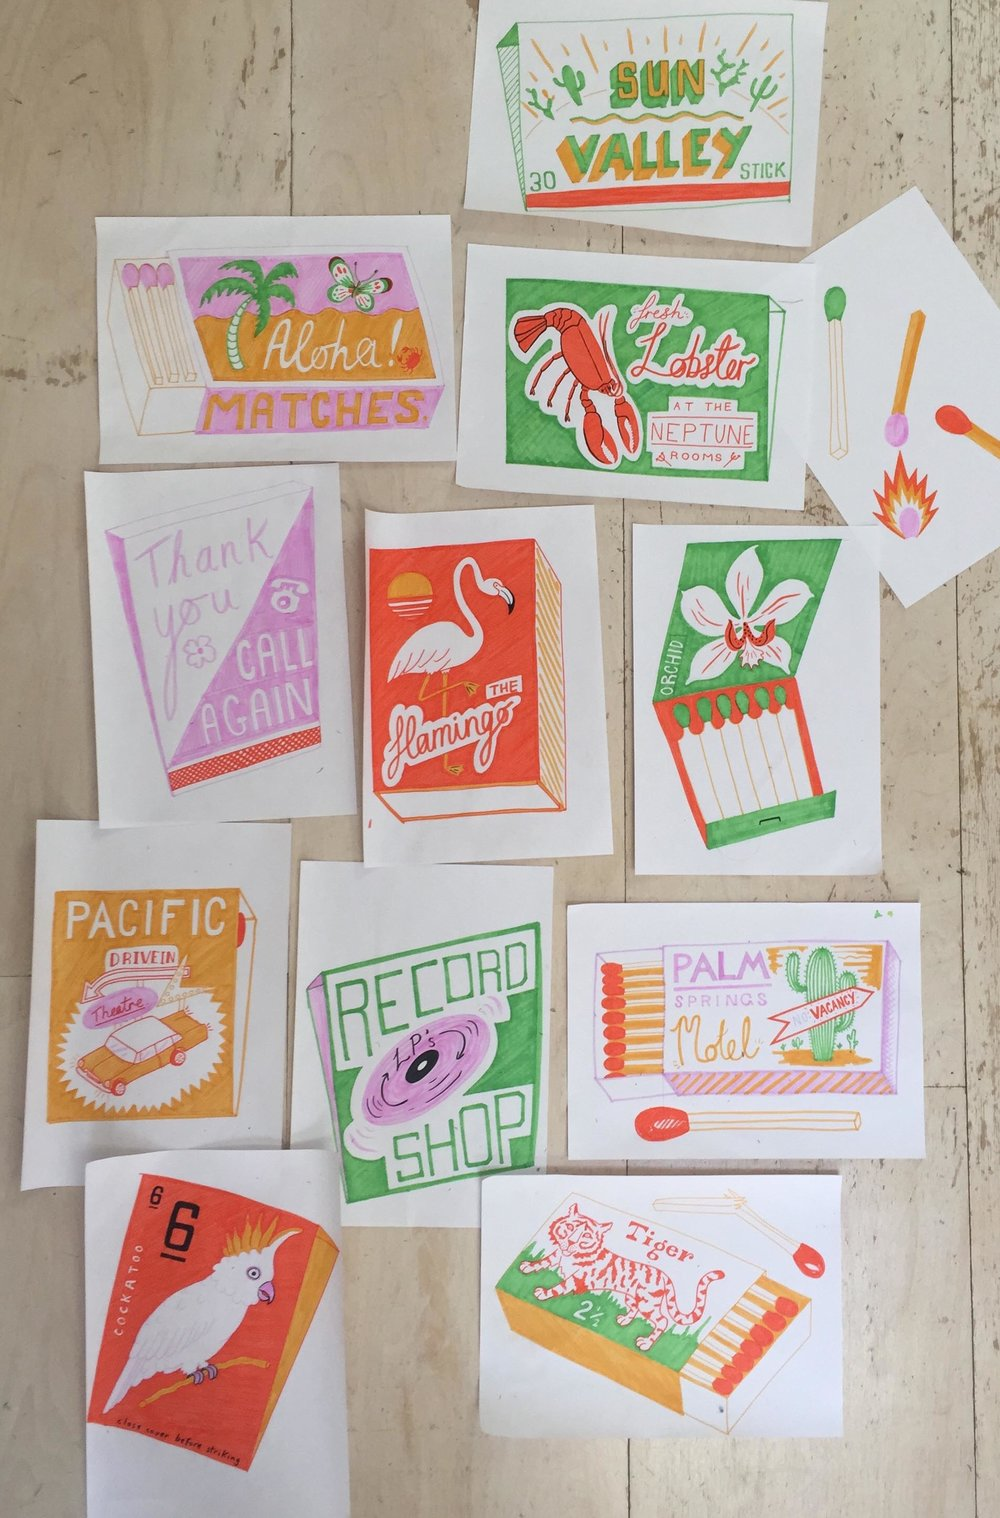 Matchbook sketches A4.jpg